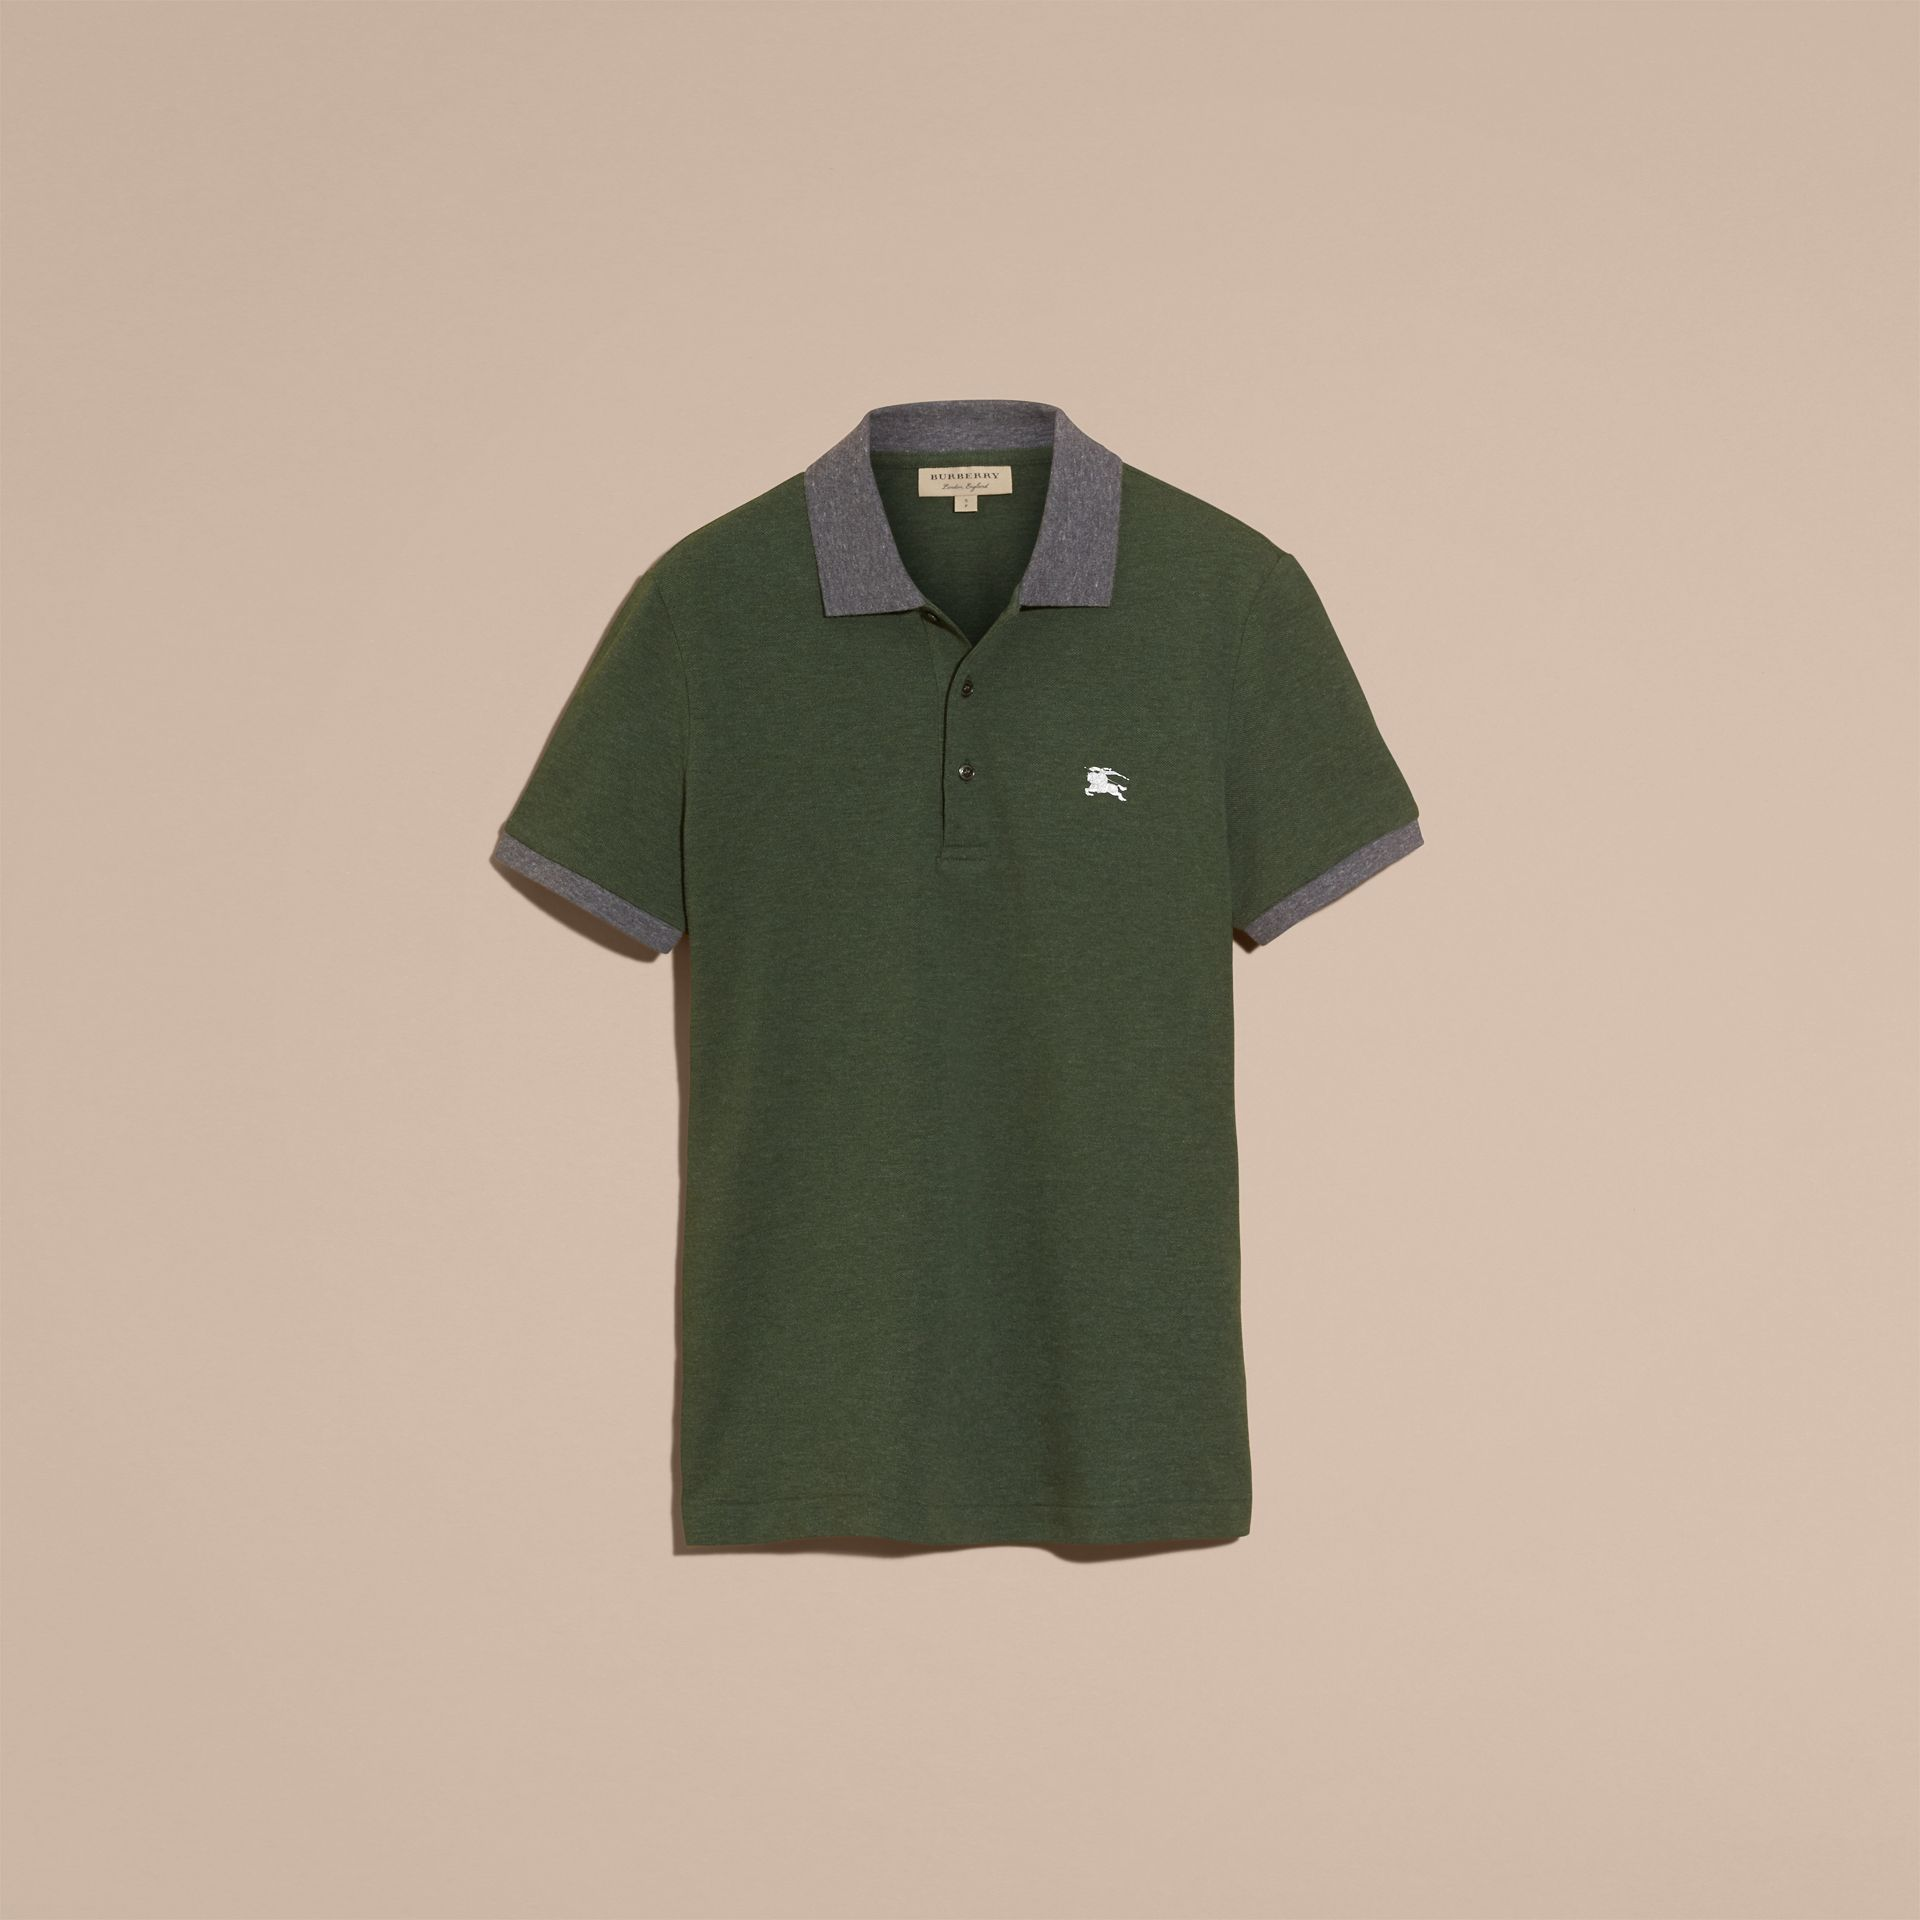 Racing green melange Contrast Colour Detail Cotton Piqué Polo Shirt Racing Green Melange - gallery image 4